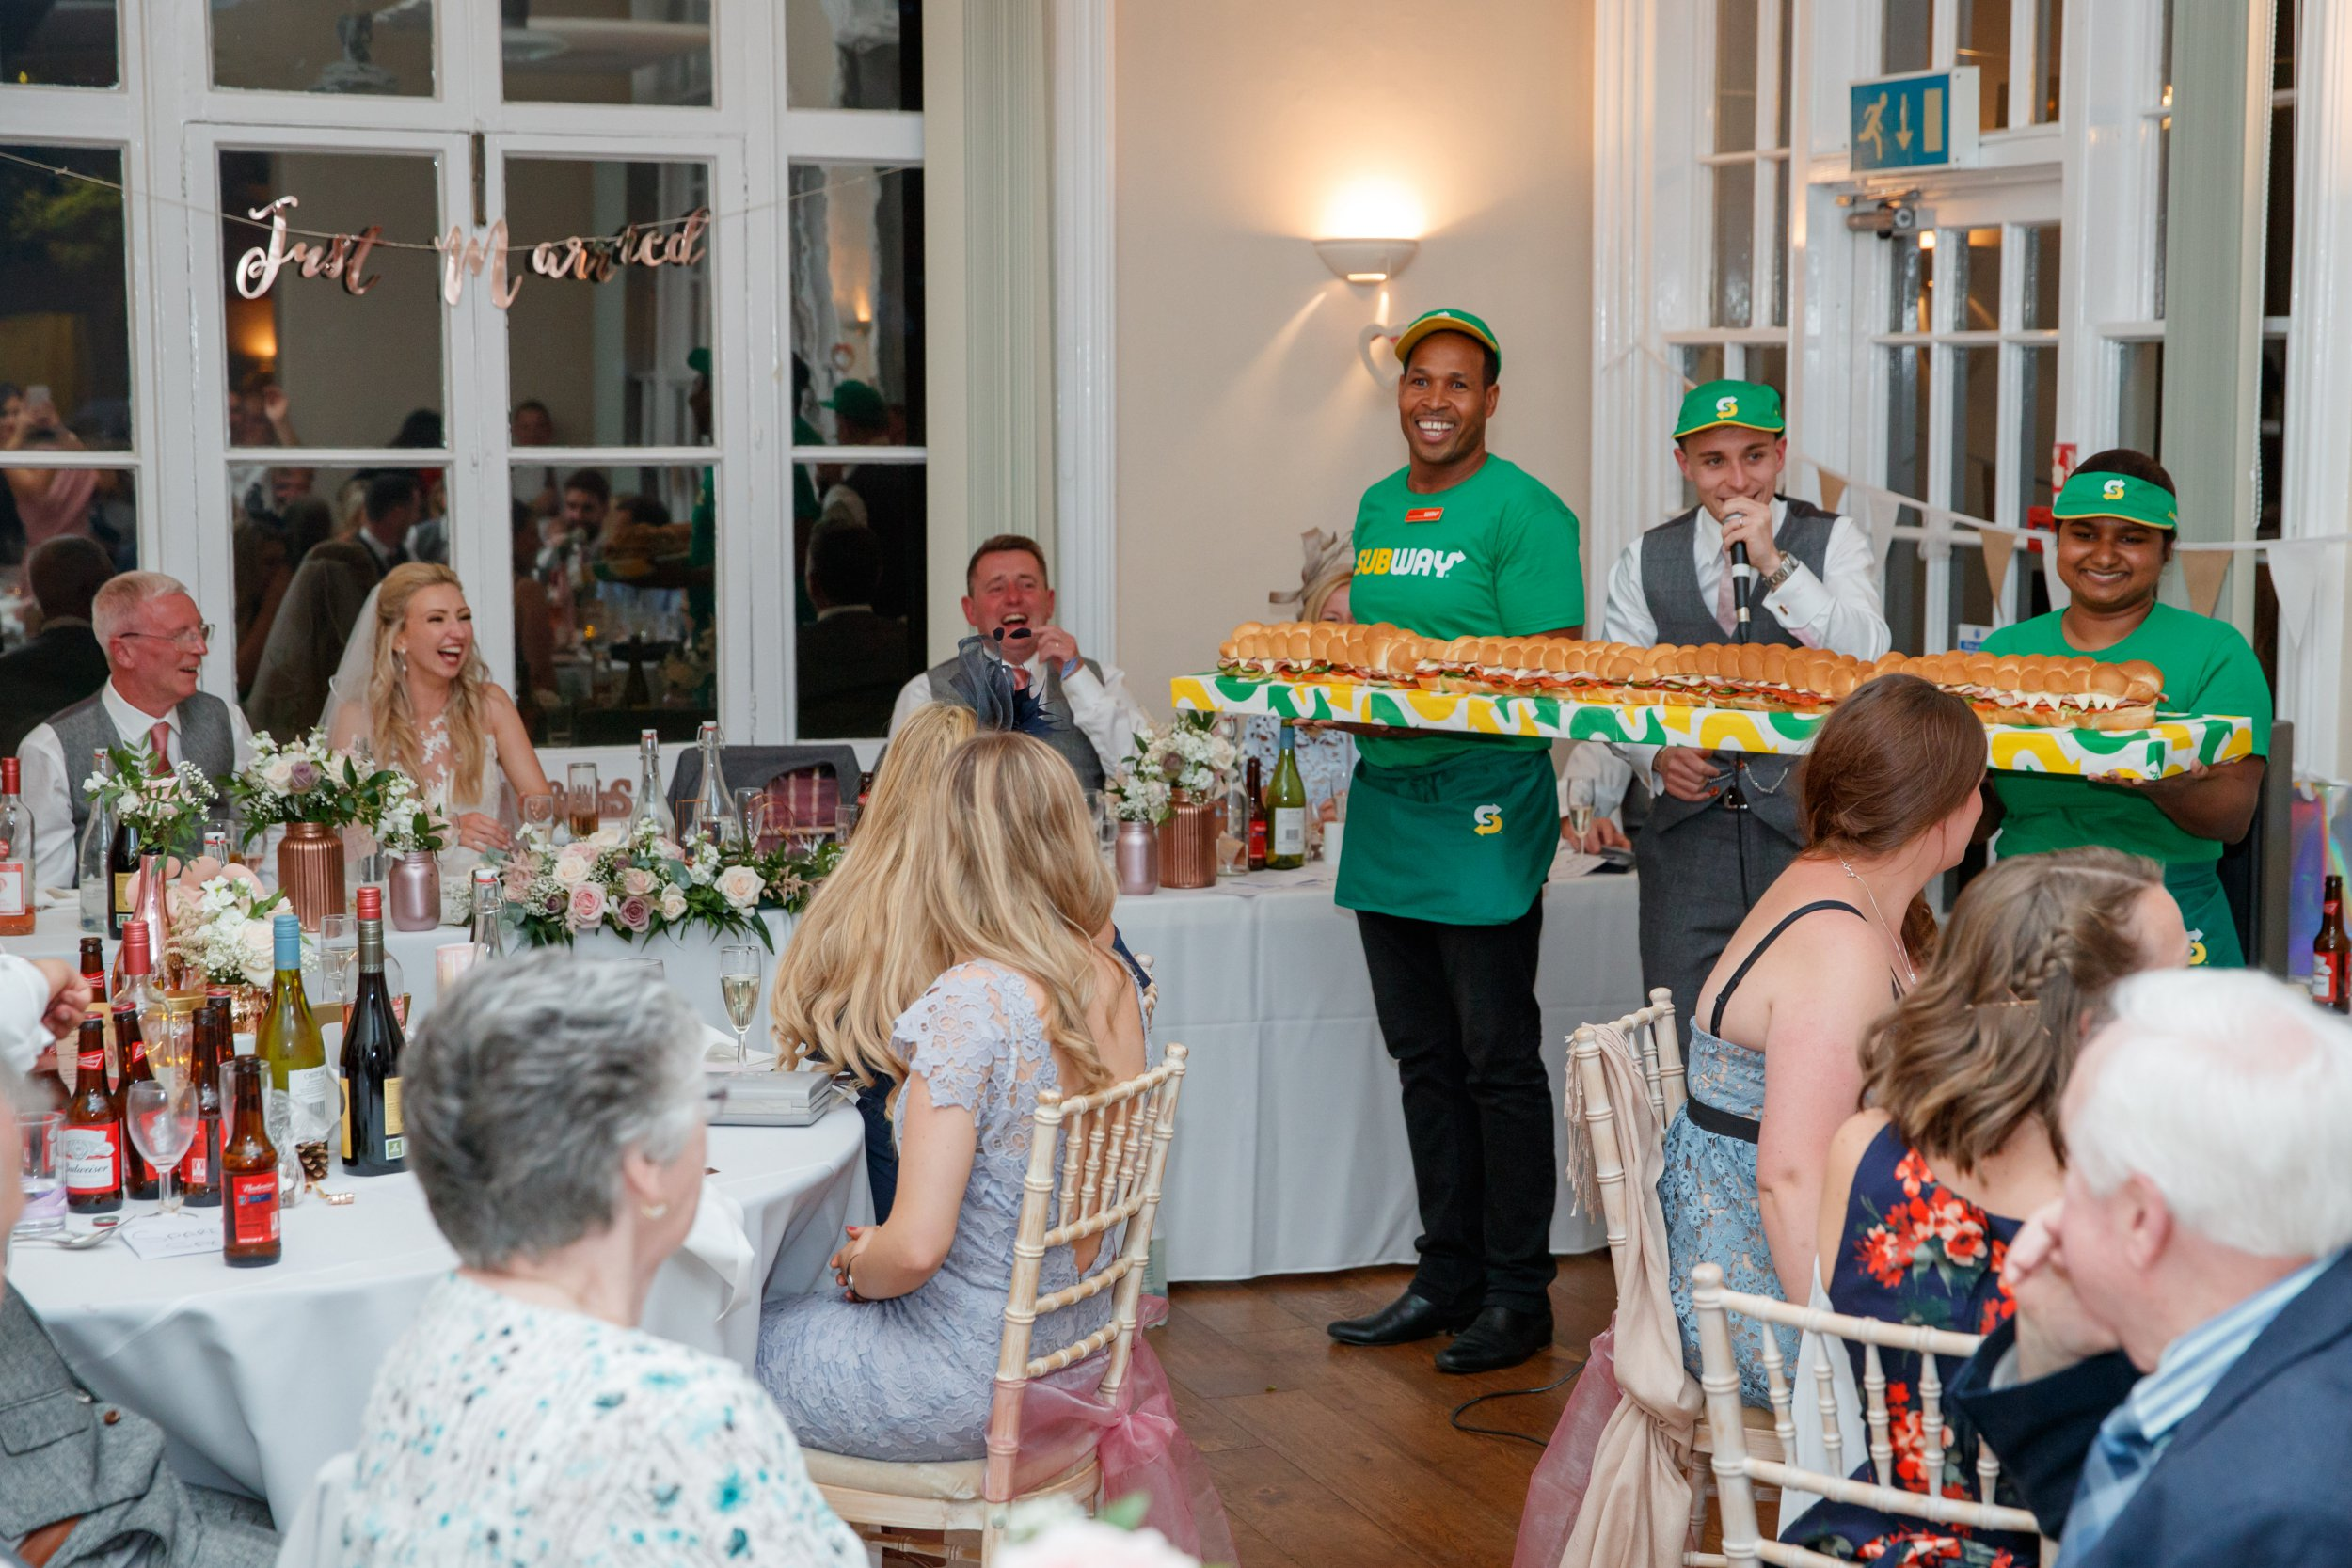 Subway Sandwich Artists Justin Pringle and Yasoda Jayaweera deliver a BMT Giant Sub to the wedding reception of James and Lucinda Coad at Abbotts Hill School in Hemel Hempstead. Three Giant Subs, each measuring six-foot in length and designed to feed up to 25 people, were created for the reception on Saturday 15 September. Featuring: Justin Pringle, Yasoda Jayaweera Where: Hemel Hempstead, Hertfordshire, United Kingdom When: 15 Sep 2018 Credit: Ben Queenborough/PinPep/WENN.com